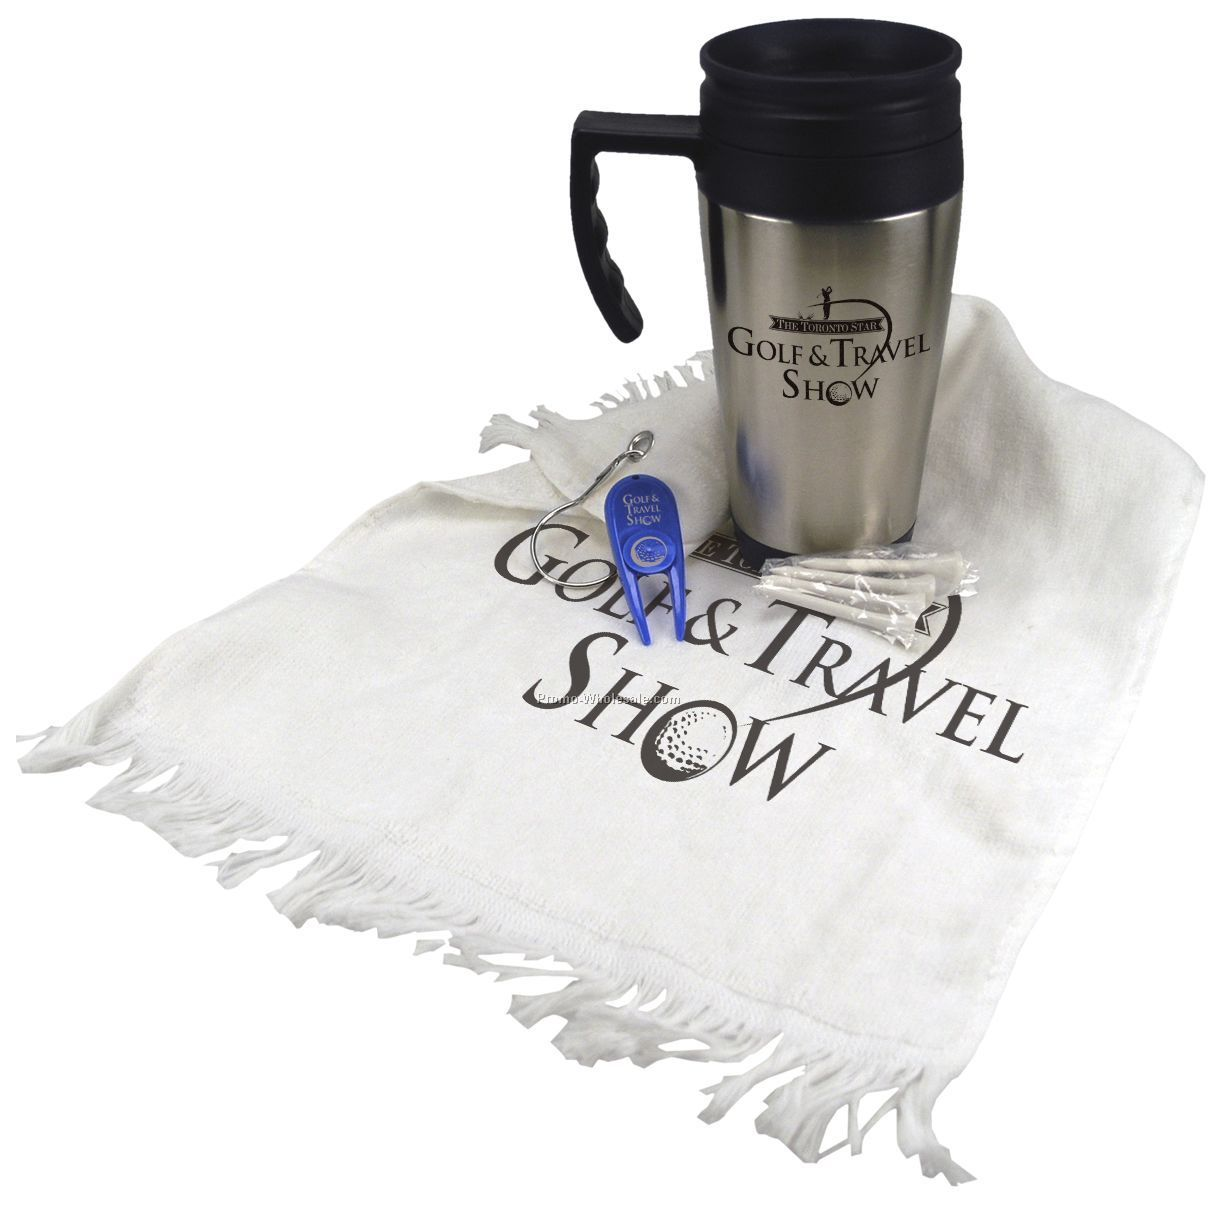 Golf Gift Set (14 Oz. Steel Budget Mug/ Divot Tool/ 4 Tees/ Towel)